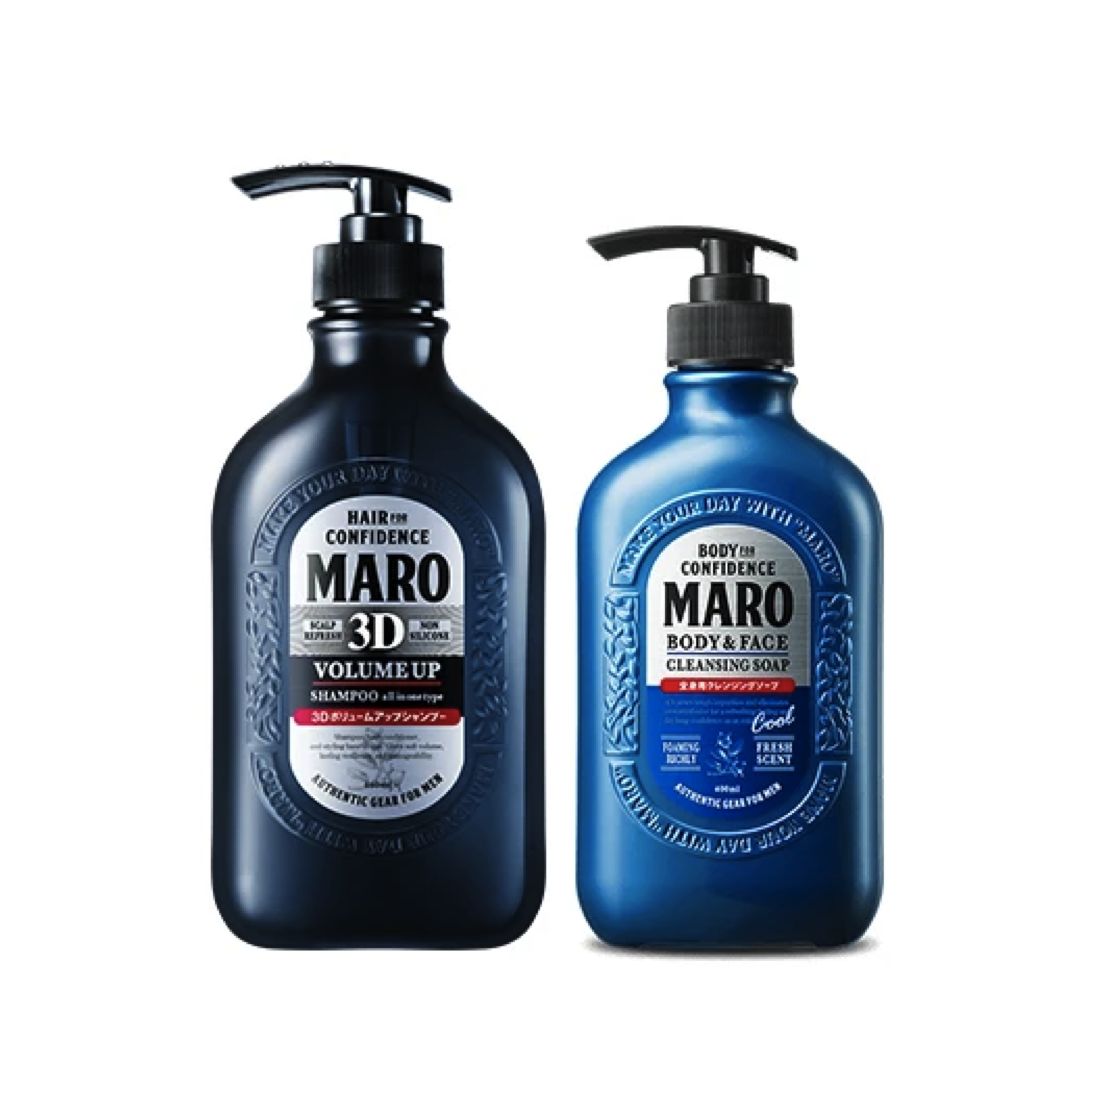 [Combo Set] Maro 3D Volume Up Shampoo EX 460ml + Maro Body and Face Cleansing Soap 400ml Cool- Original from Japan (READY STOCK)